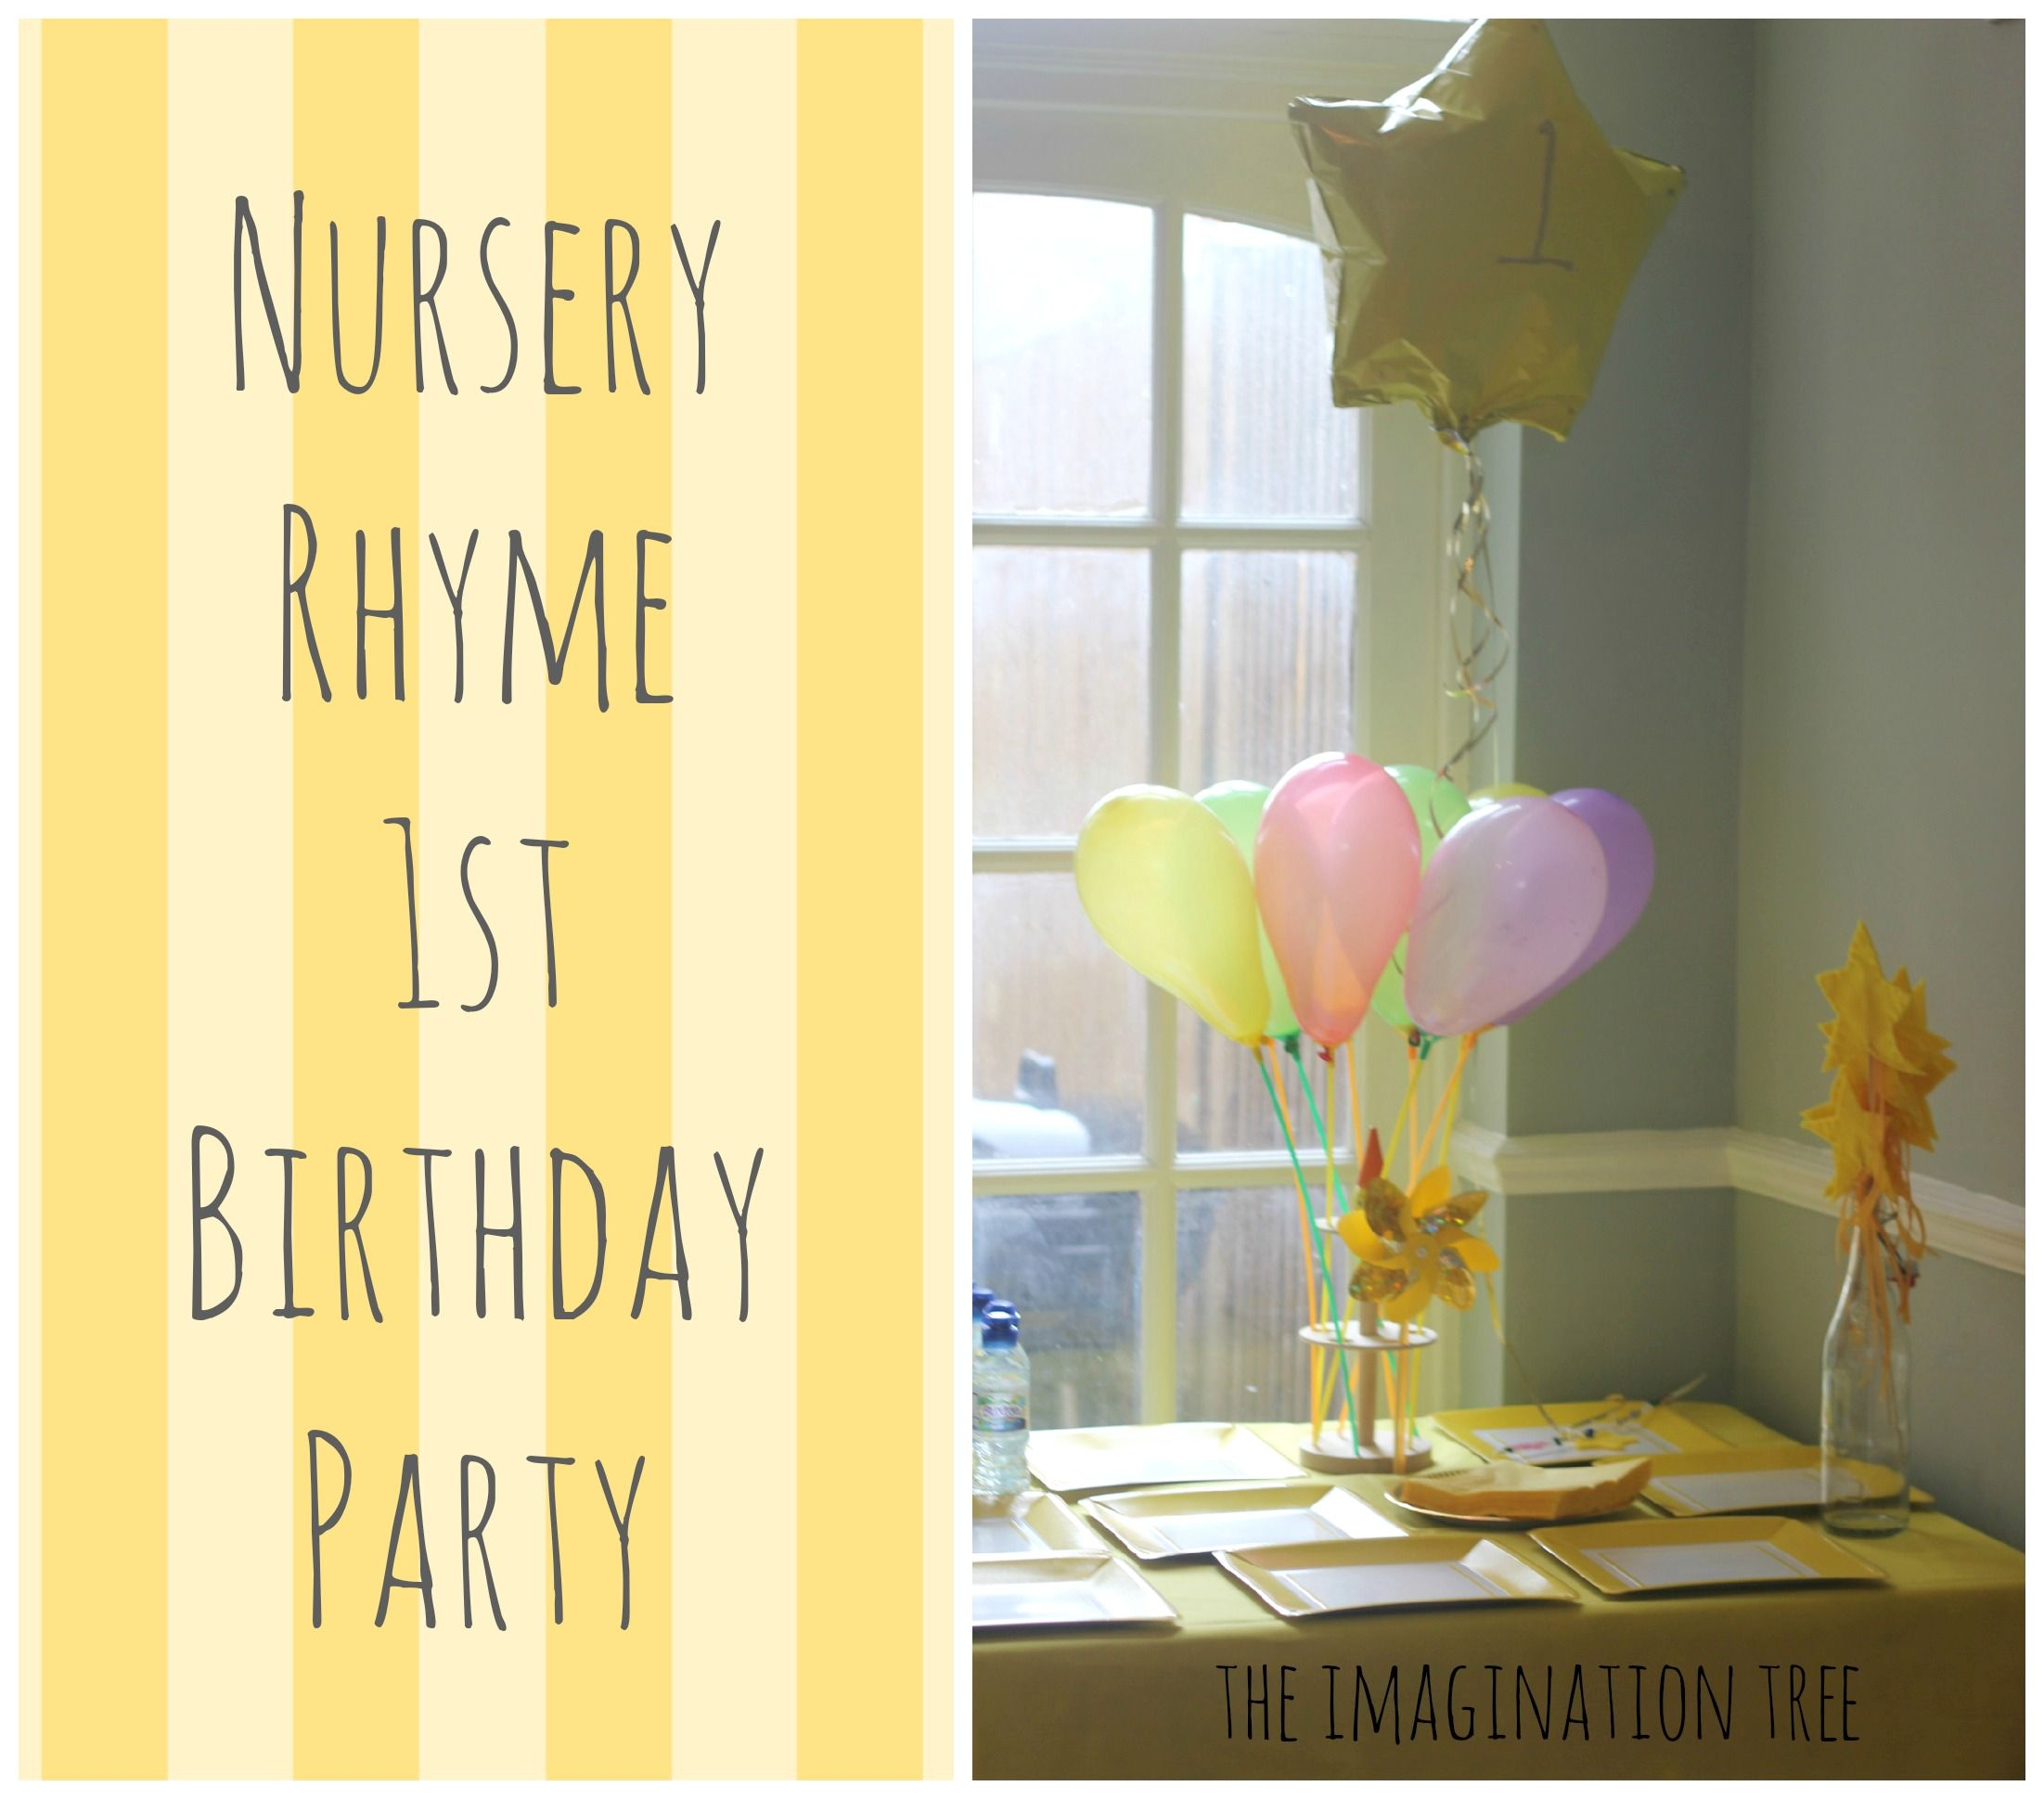 Nursery Rhyme Party For Baby's 1st Birthday